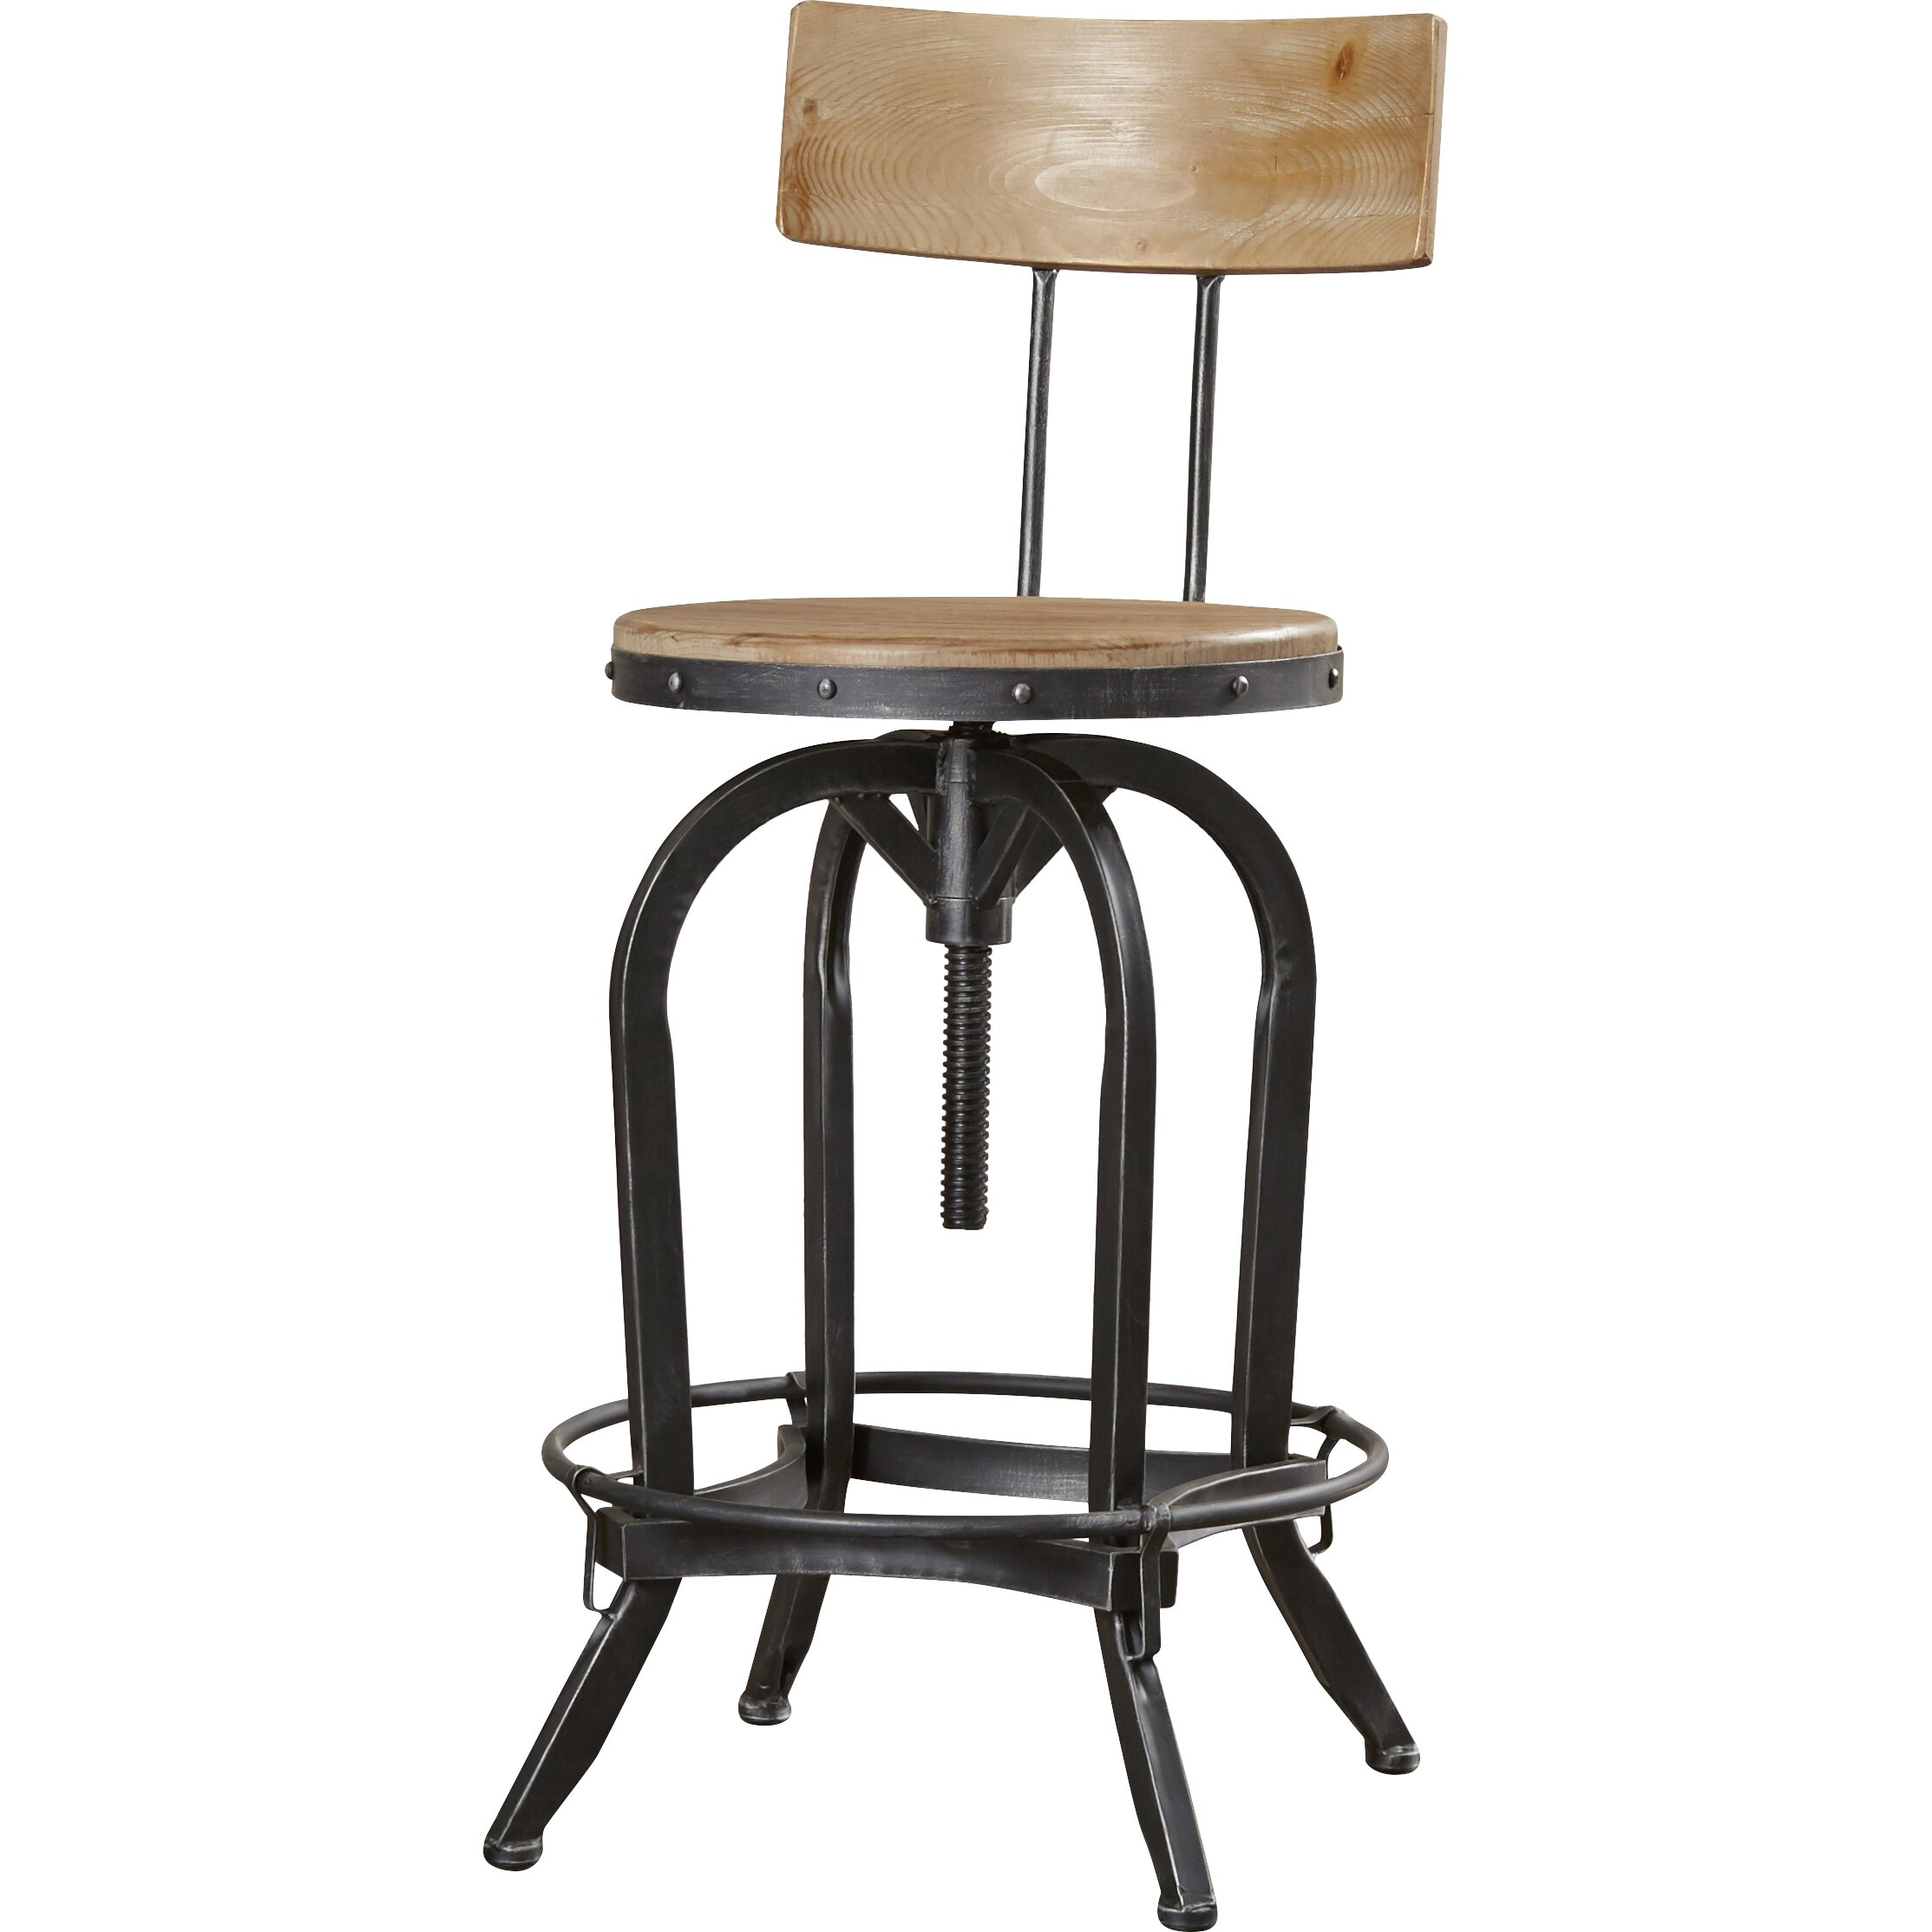 Trent austin design oria adjustable height swivel bar for Counter height swivel bar stools